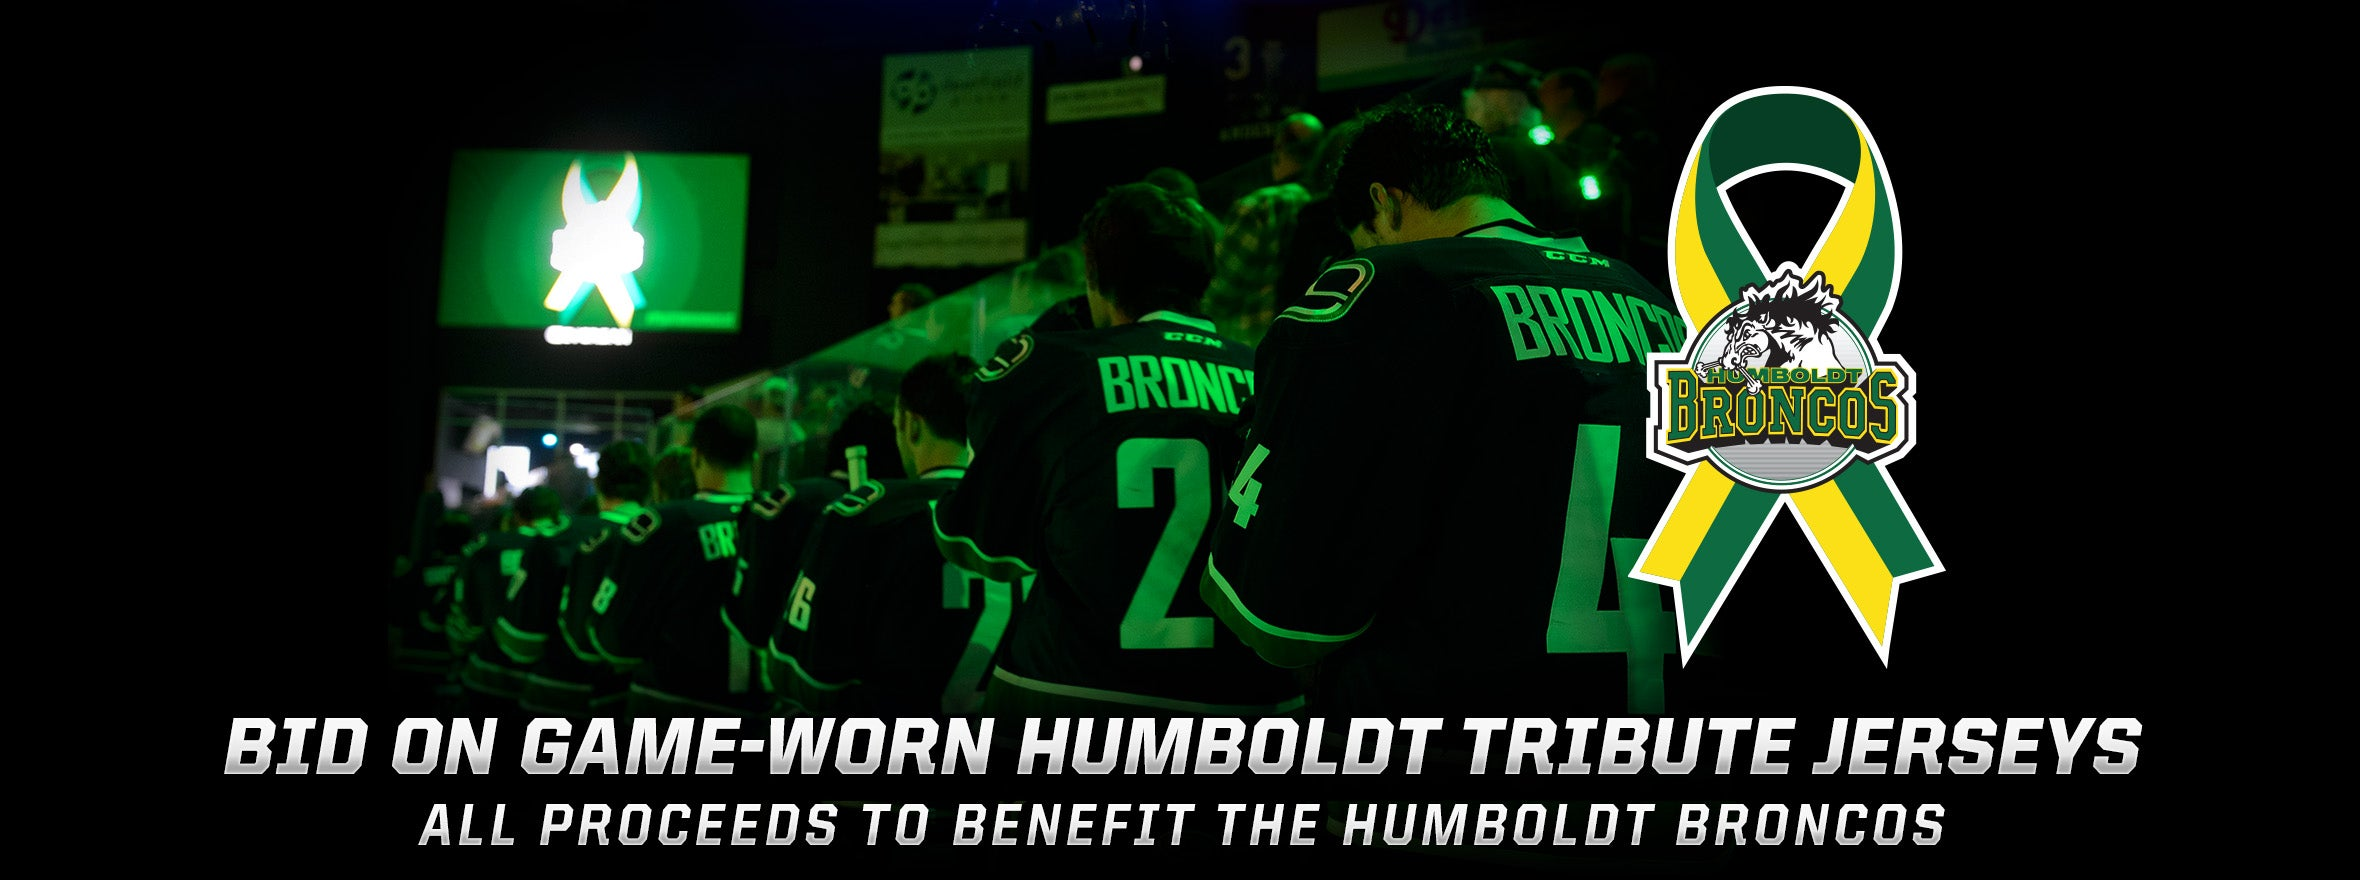 UTICA COMETS HUMBOLDT TRIBUTE JERSEY AUCTION